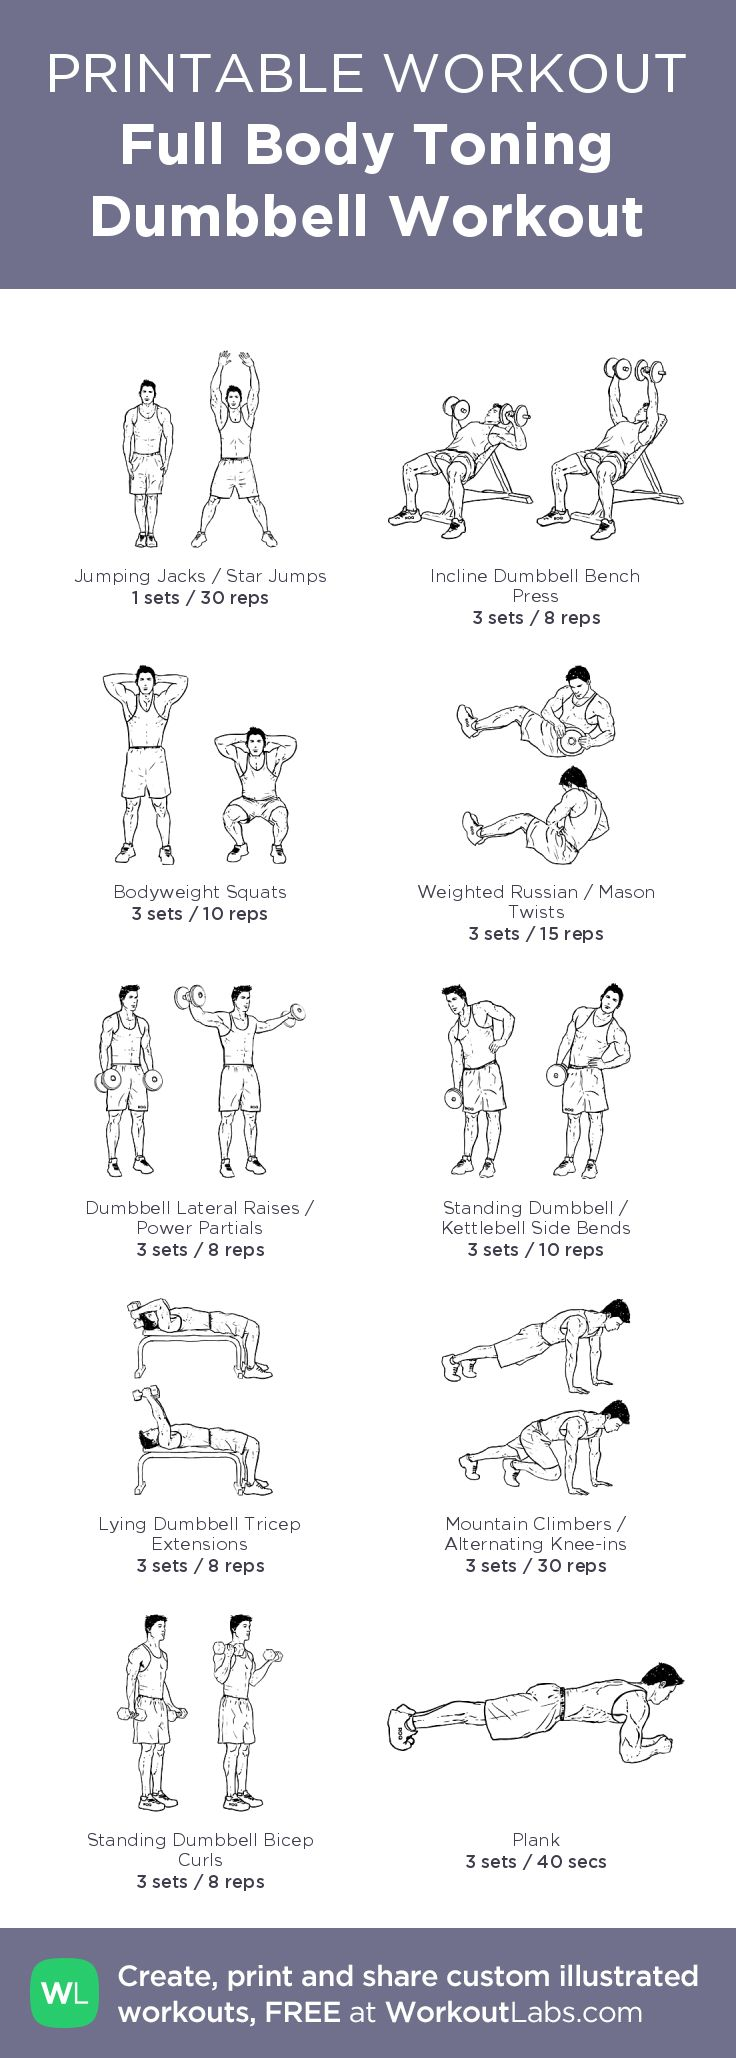 Full Body Toning Dumbbell Workout – illustrated exercise plan created at WorkoutLabs.com • Click for a printable PDF and to build your own #customworkout